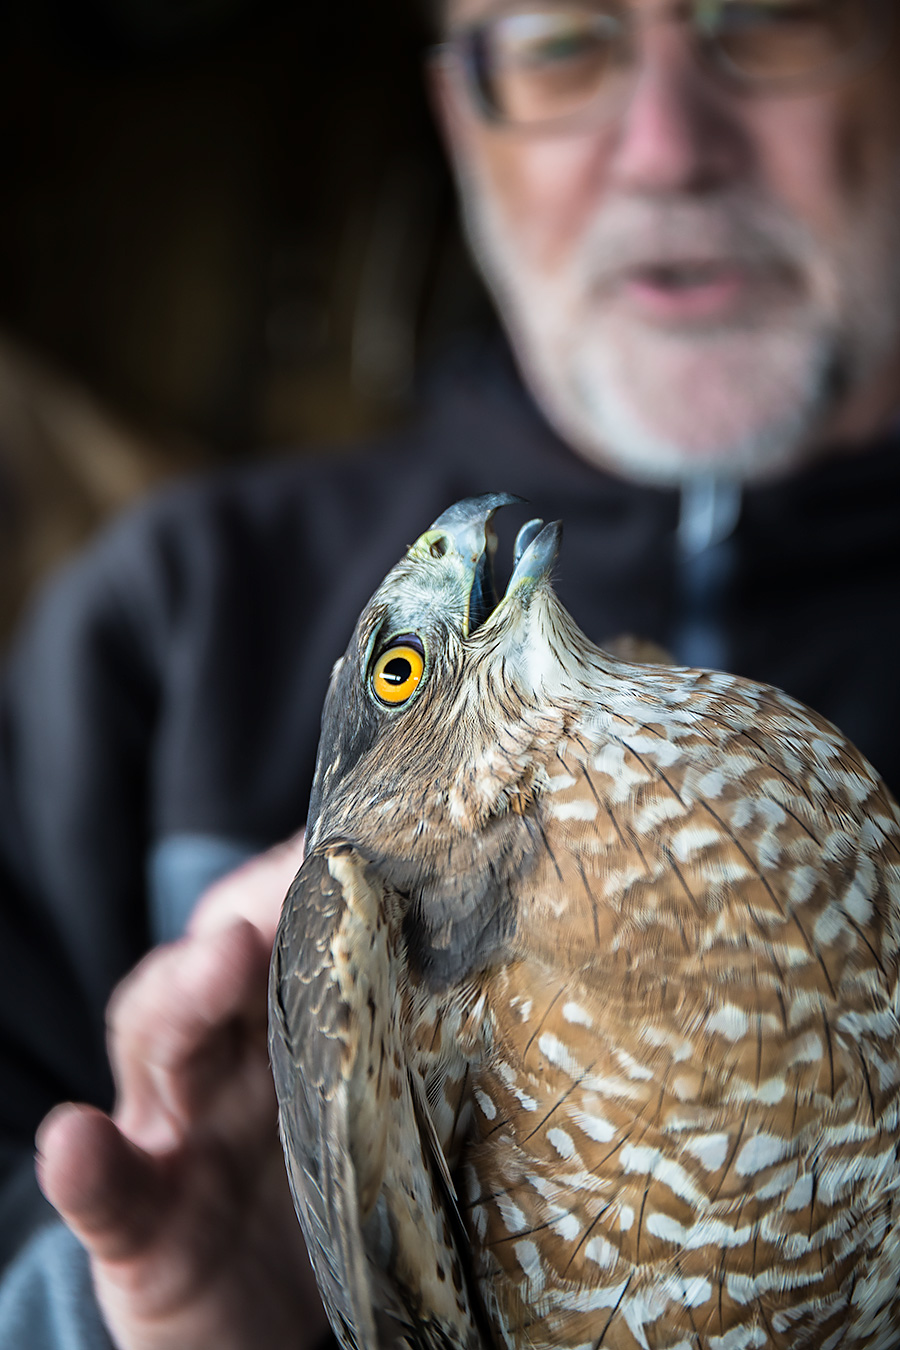 """PM"" Paul Napier of the Cape May Raptor Banding Project, clearly petting that Coopers Hawk."